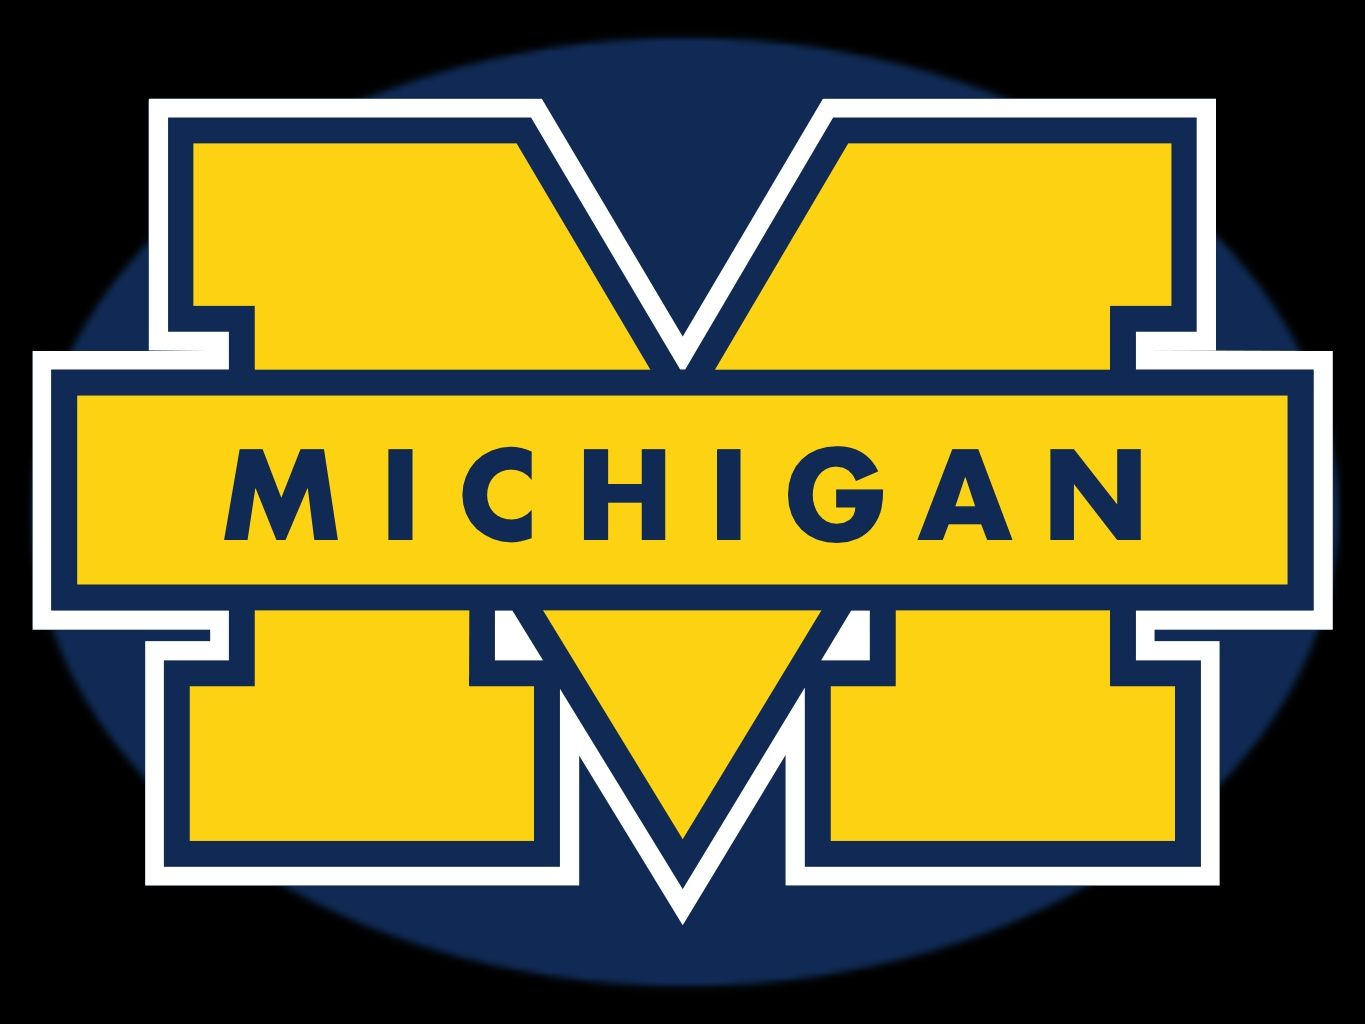 Pin sports logopng on pinterest - Michigan Wolverines Secondary Logo On Chris Creamer S Sports Logos Page Sportslogos A Virtual Museum Of Sports Logos Uniforms And Historical Items